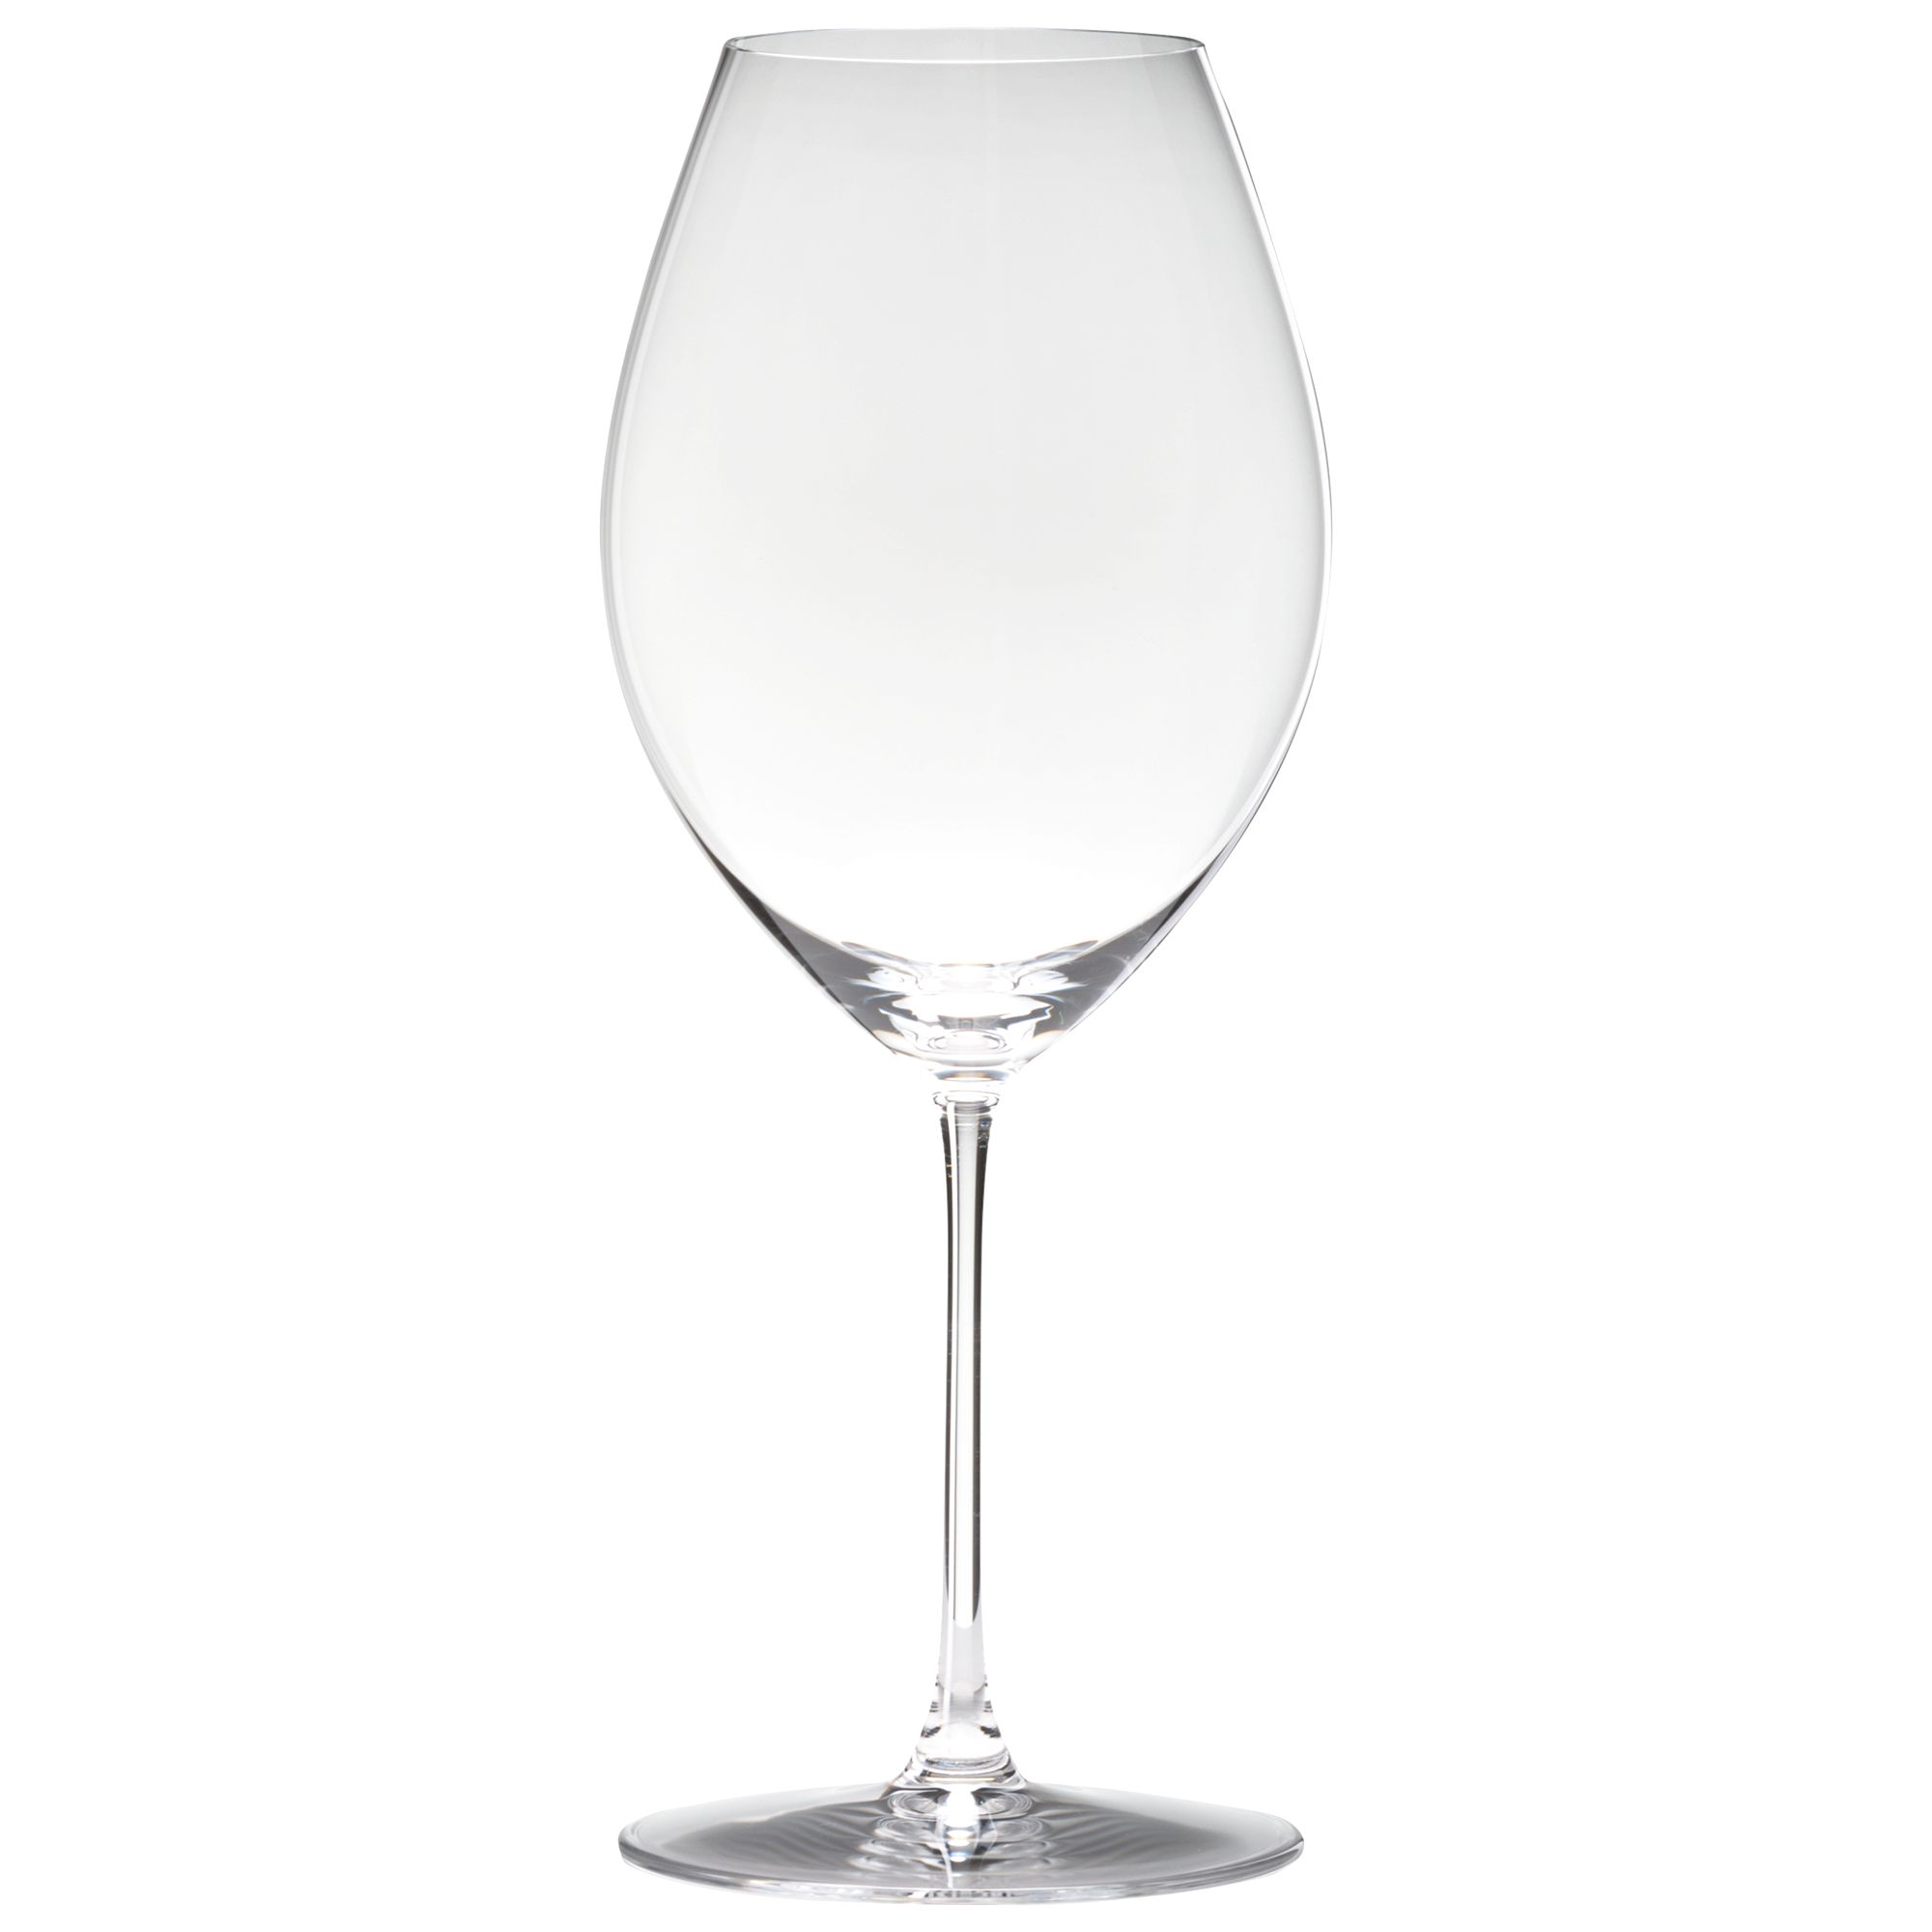 Riedel Riedel Veritas Old World Syrah Wine Glasses, Set of 2